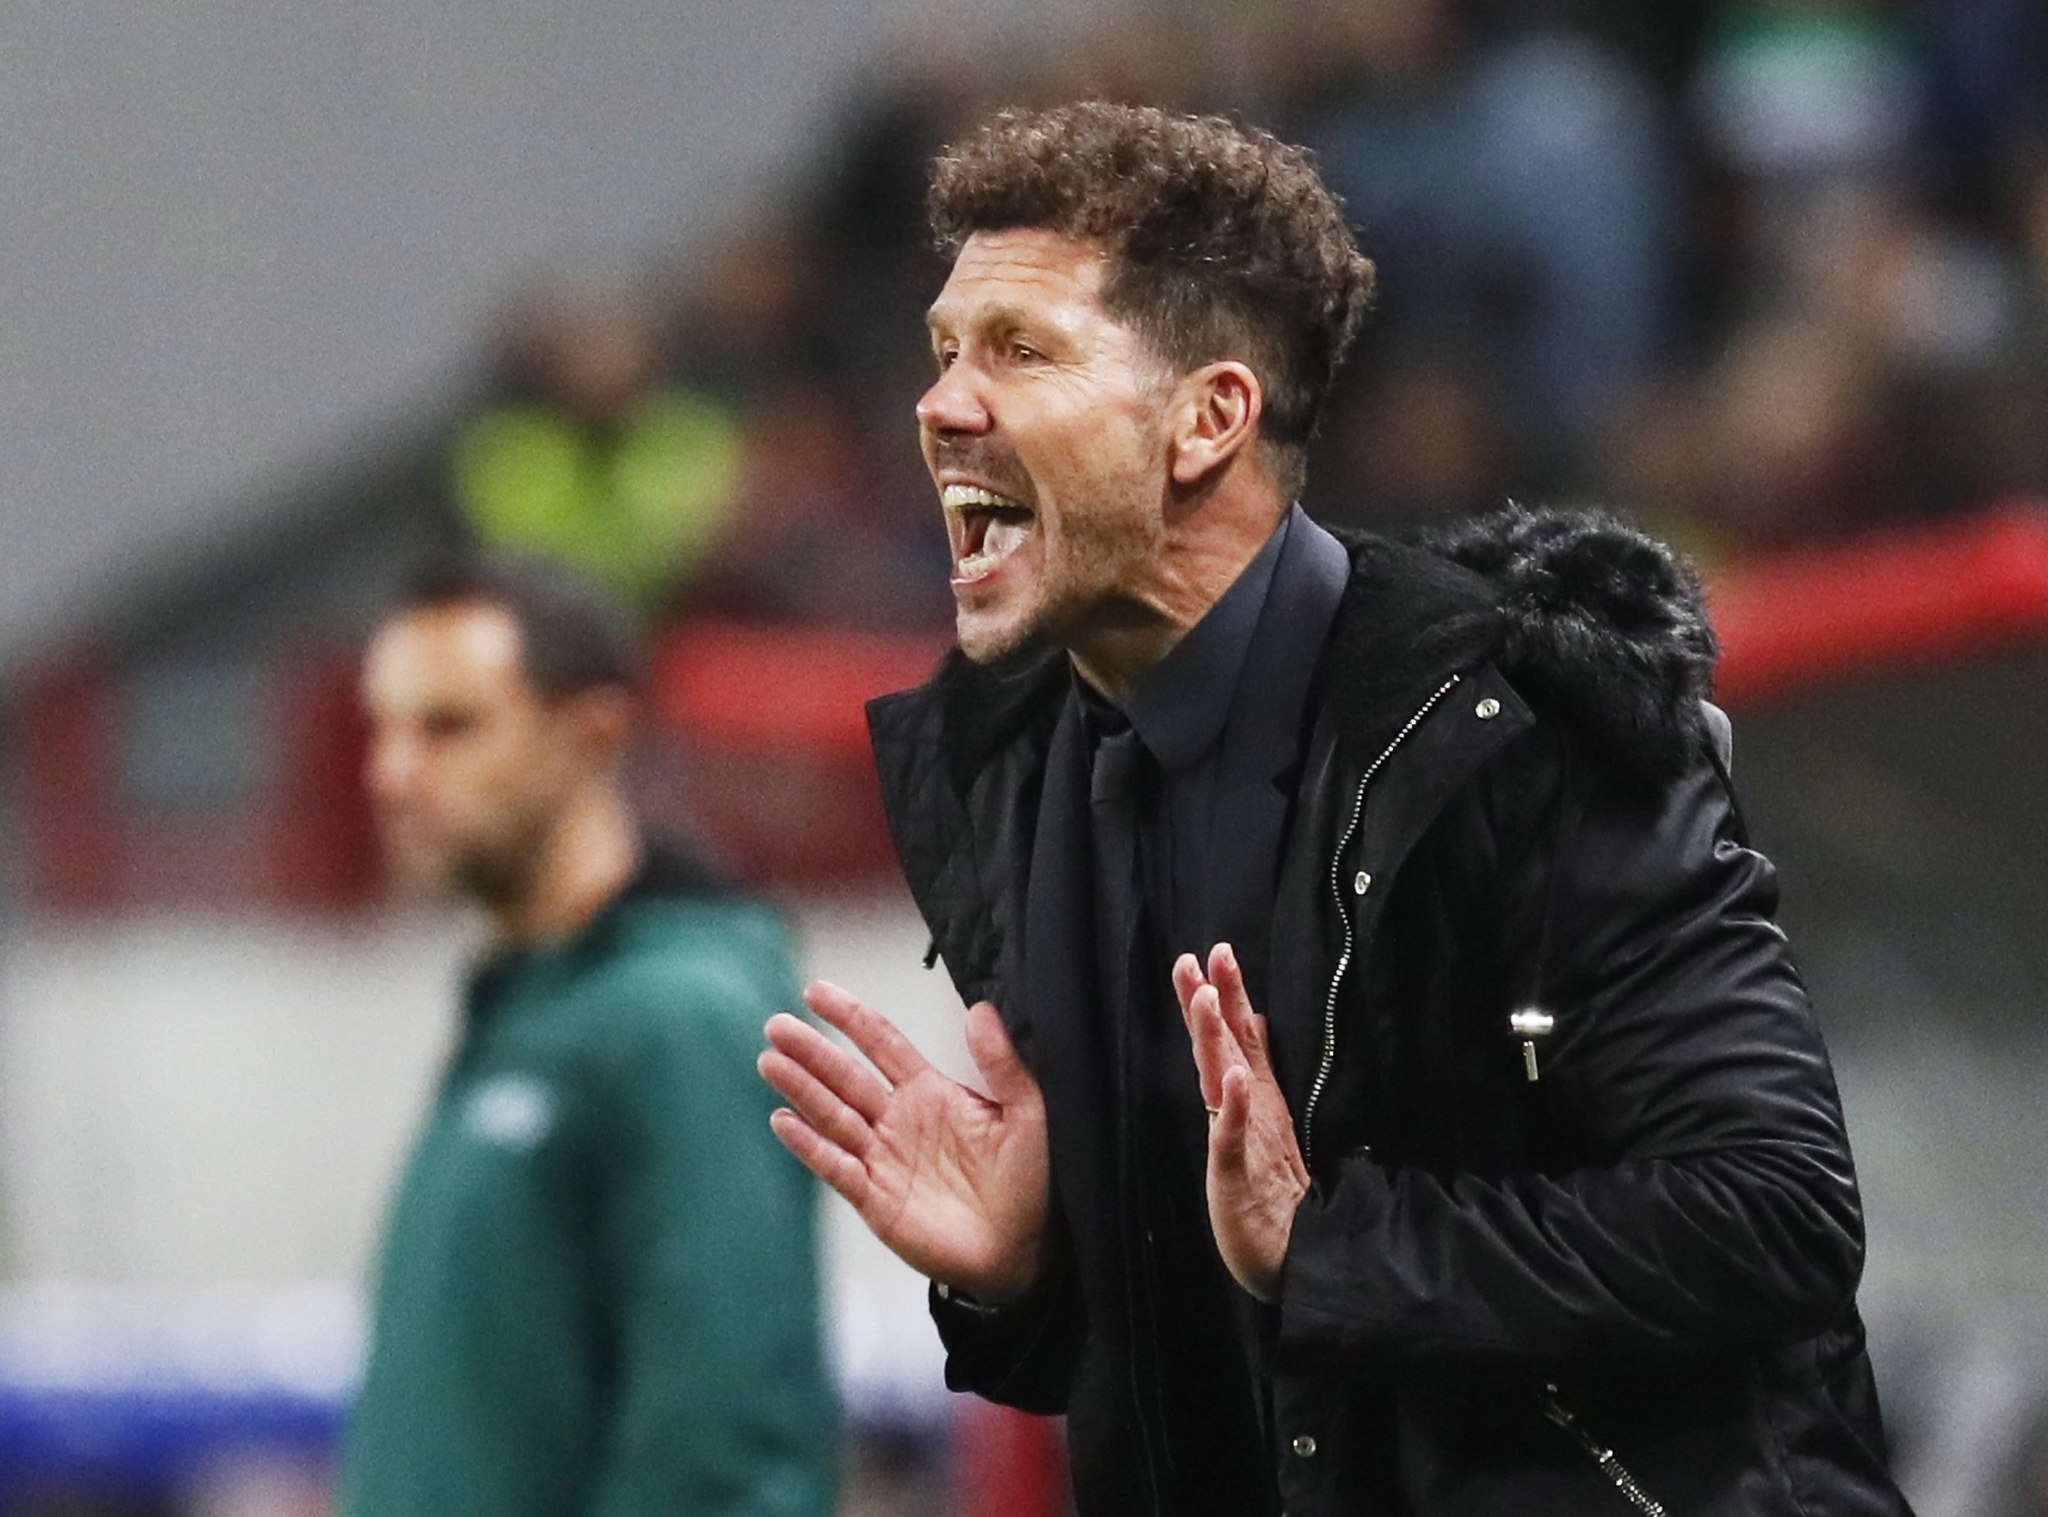 Moscow (Russian Federation), 01/10/2019.- Atletico Madrid head coach Pablo <HIT>Simeone</HIT> during the UEFA Champions League match between Lokomotiv Moscow and Atletico Madrid in Moscow, Russia, 01 October 2019. (Liga de Campeones, Rusia, Moscú) EFE/EPA/MAXIM SHIPENKOV